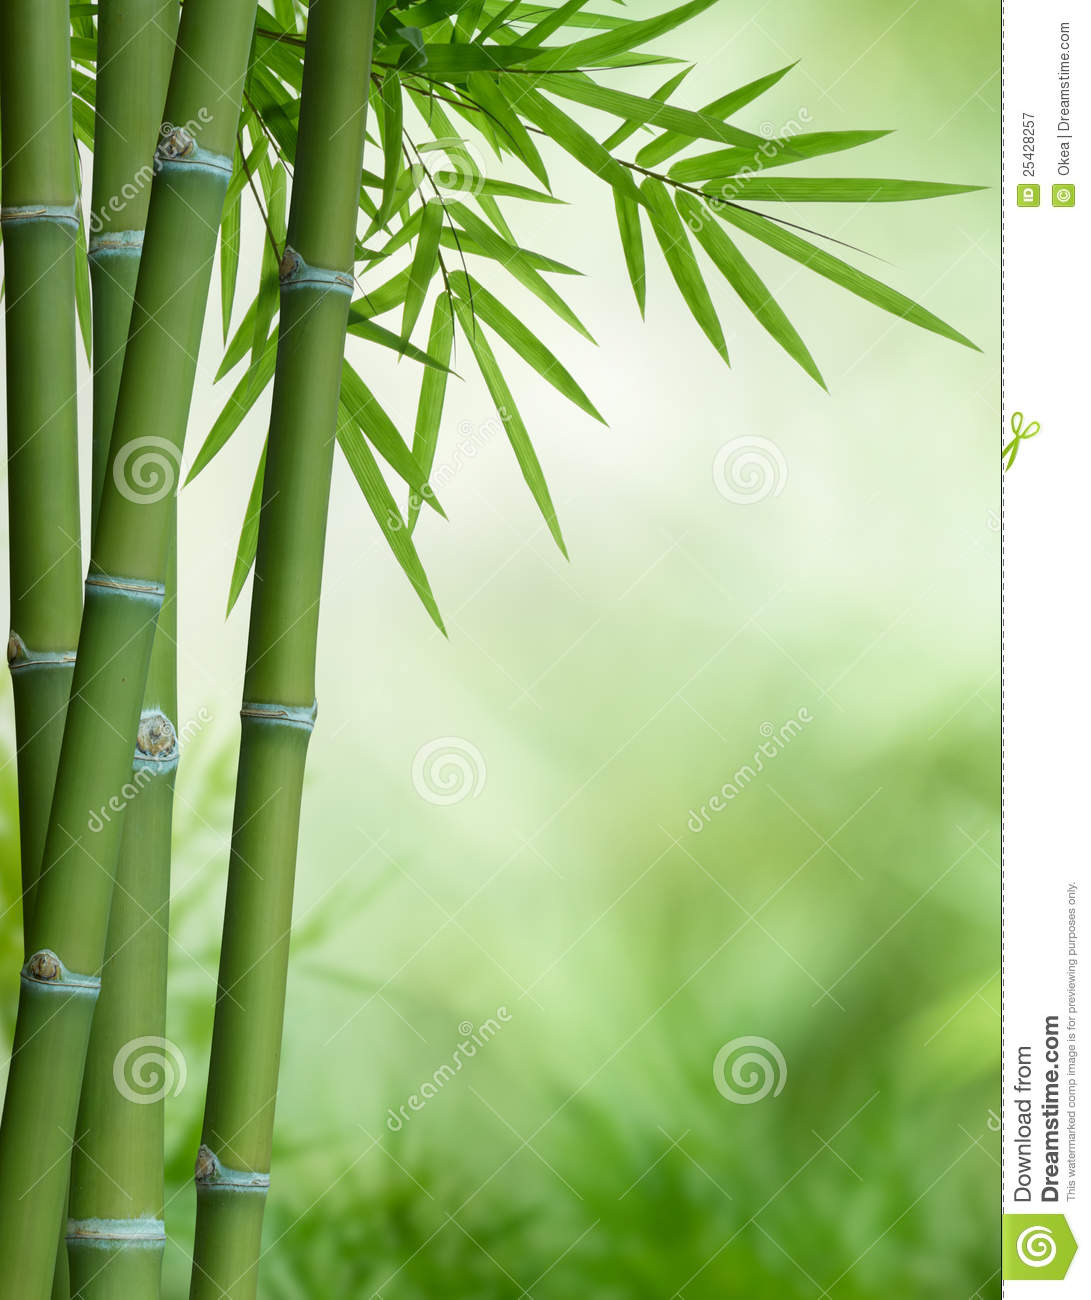 bamboo tree with leaves stock image image of nature. Black Bedroom Furniture Sets. Home Design Ideas